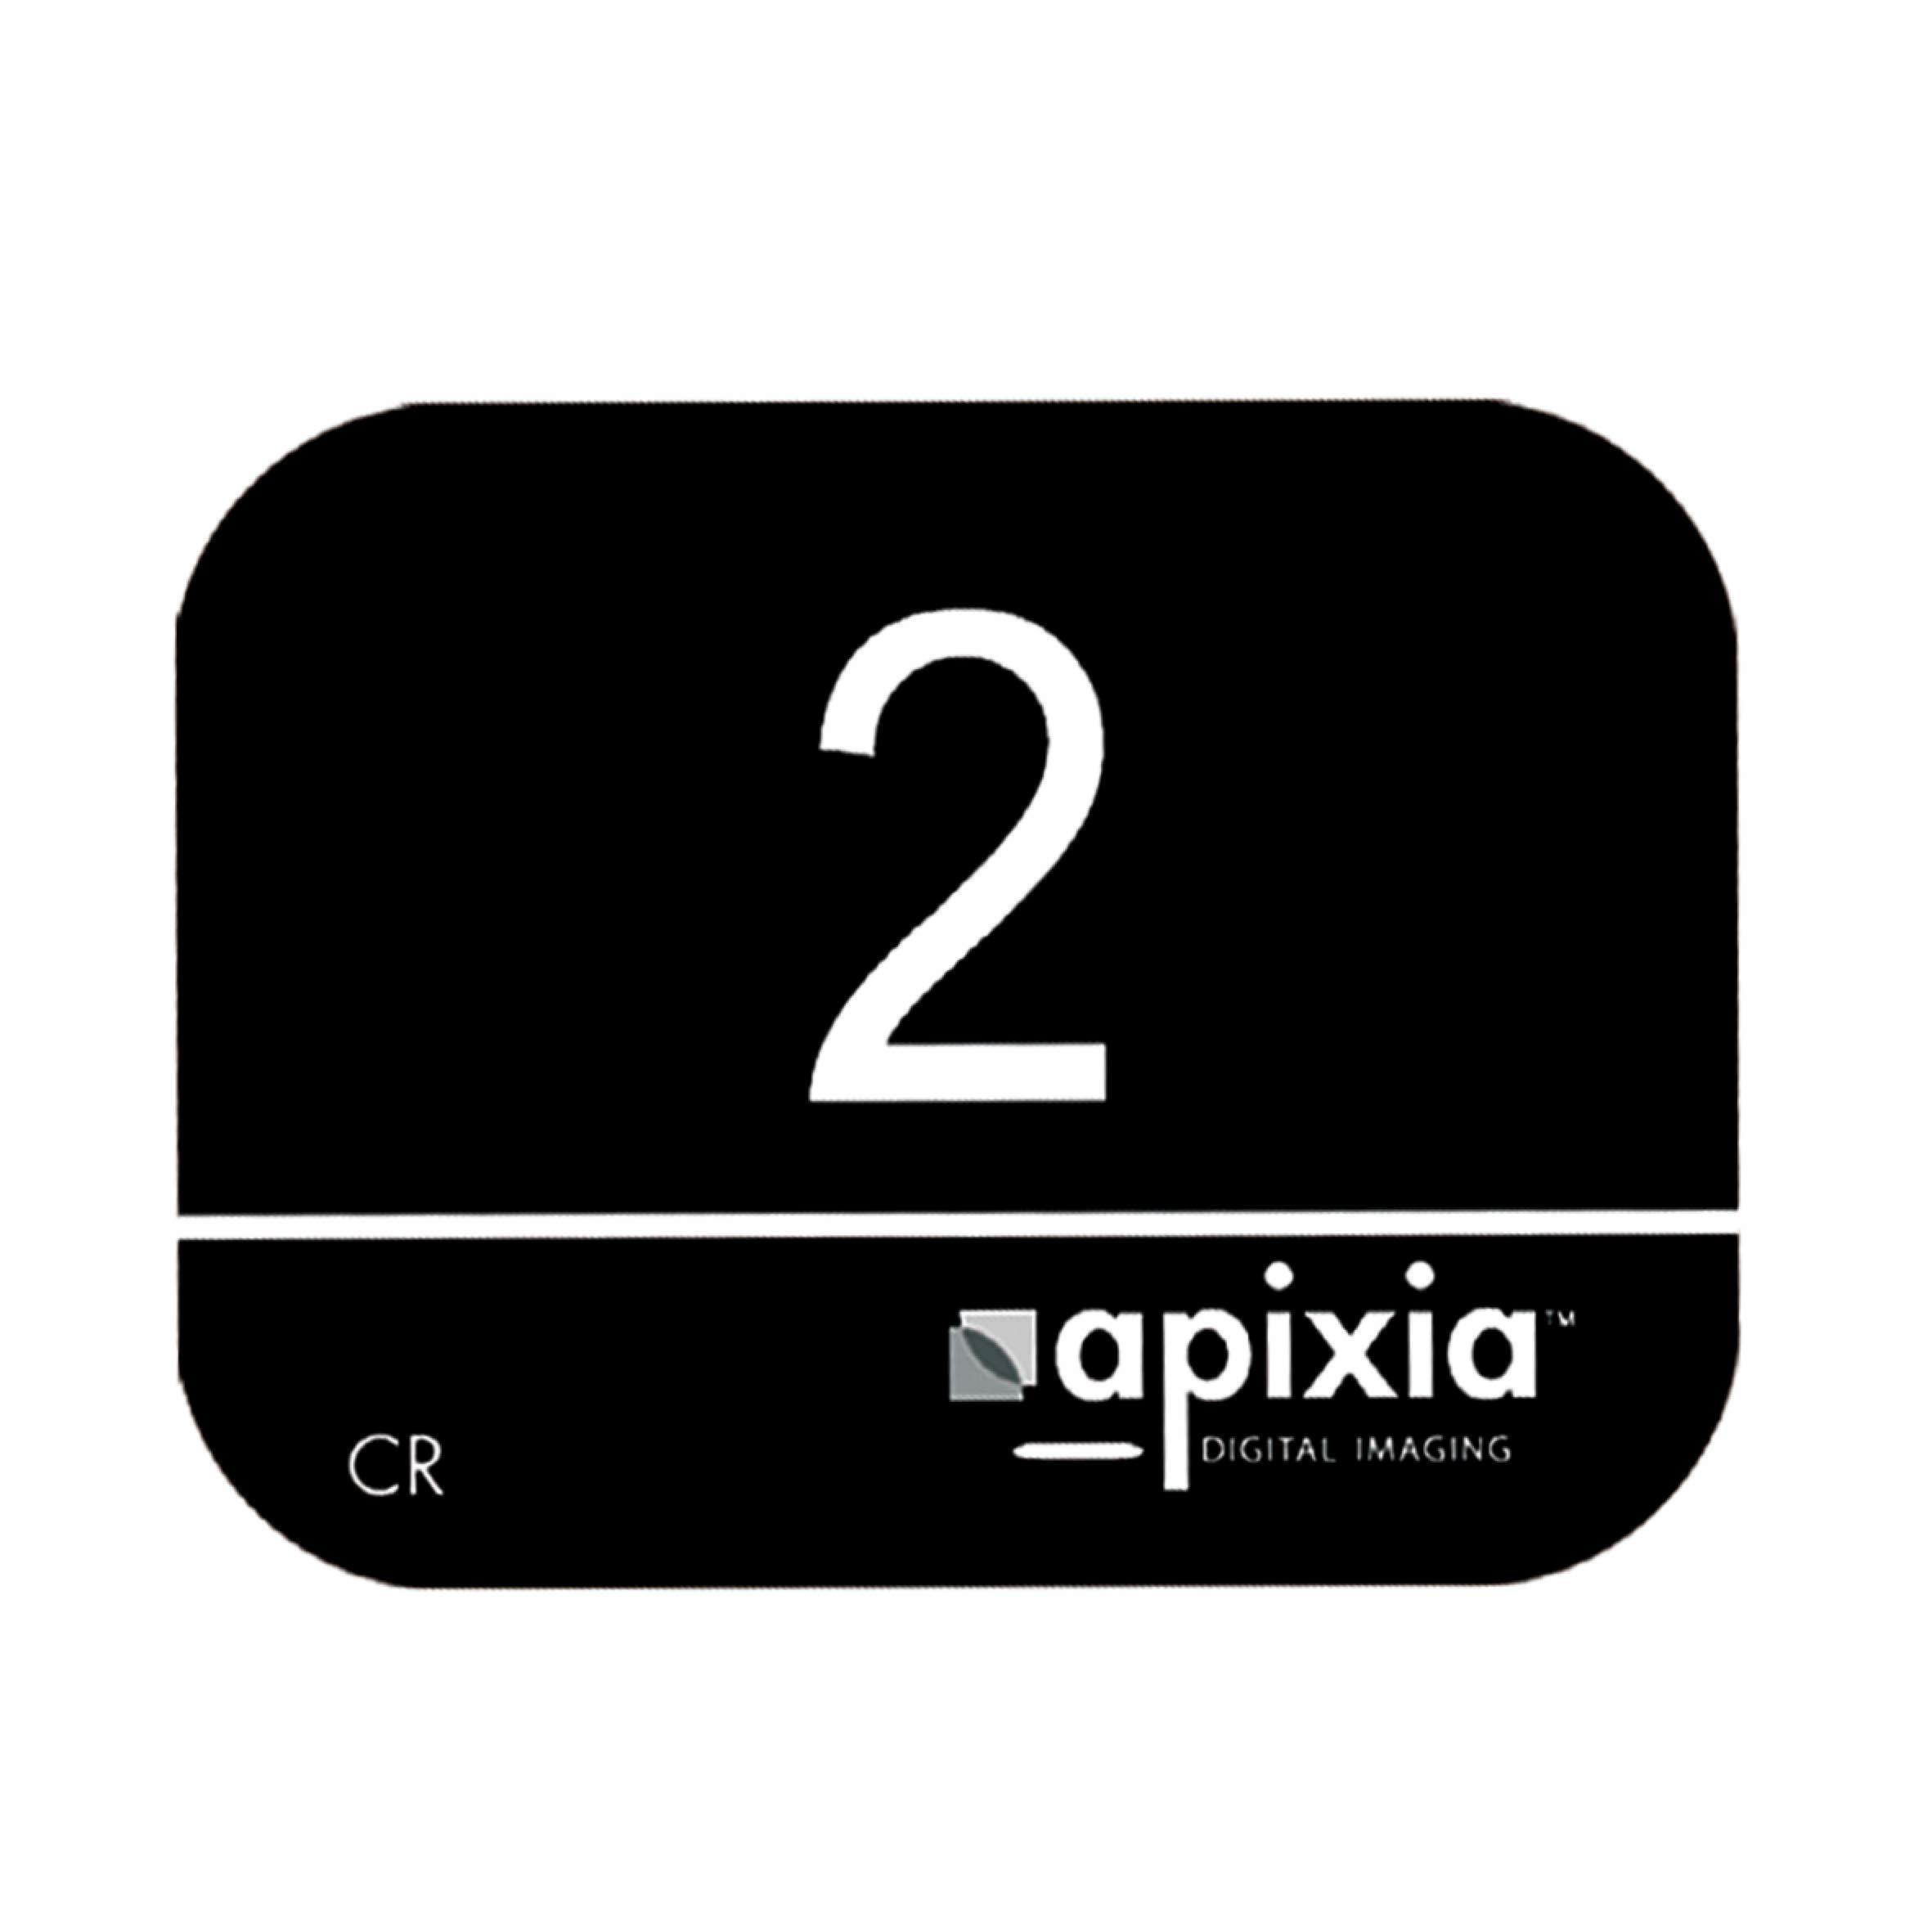 Apixia 10802 Phosphor Plates, 31 mm Height, 41 mm Length, 0.15 mm Thickness, Size 2 (Box of 4) by Apixia